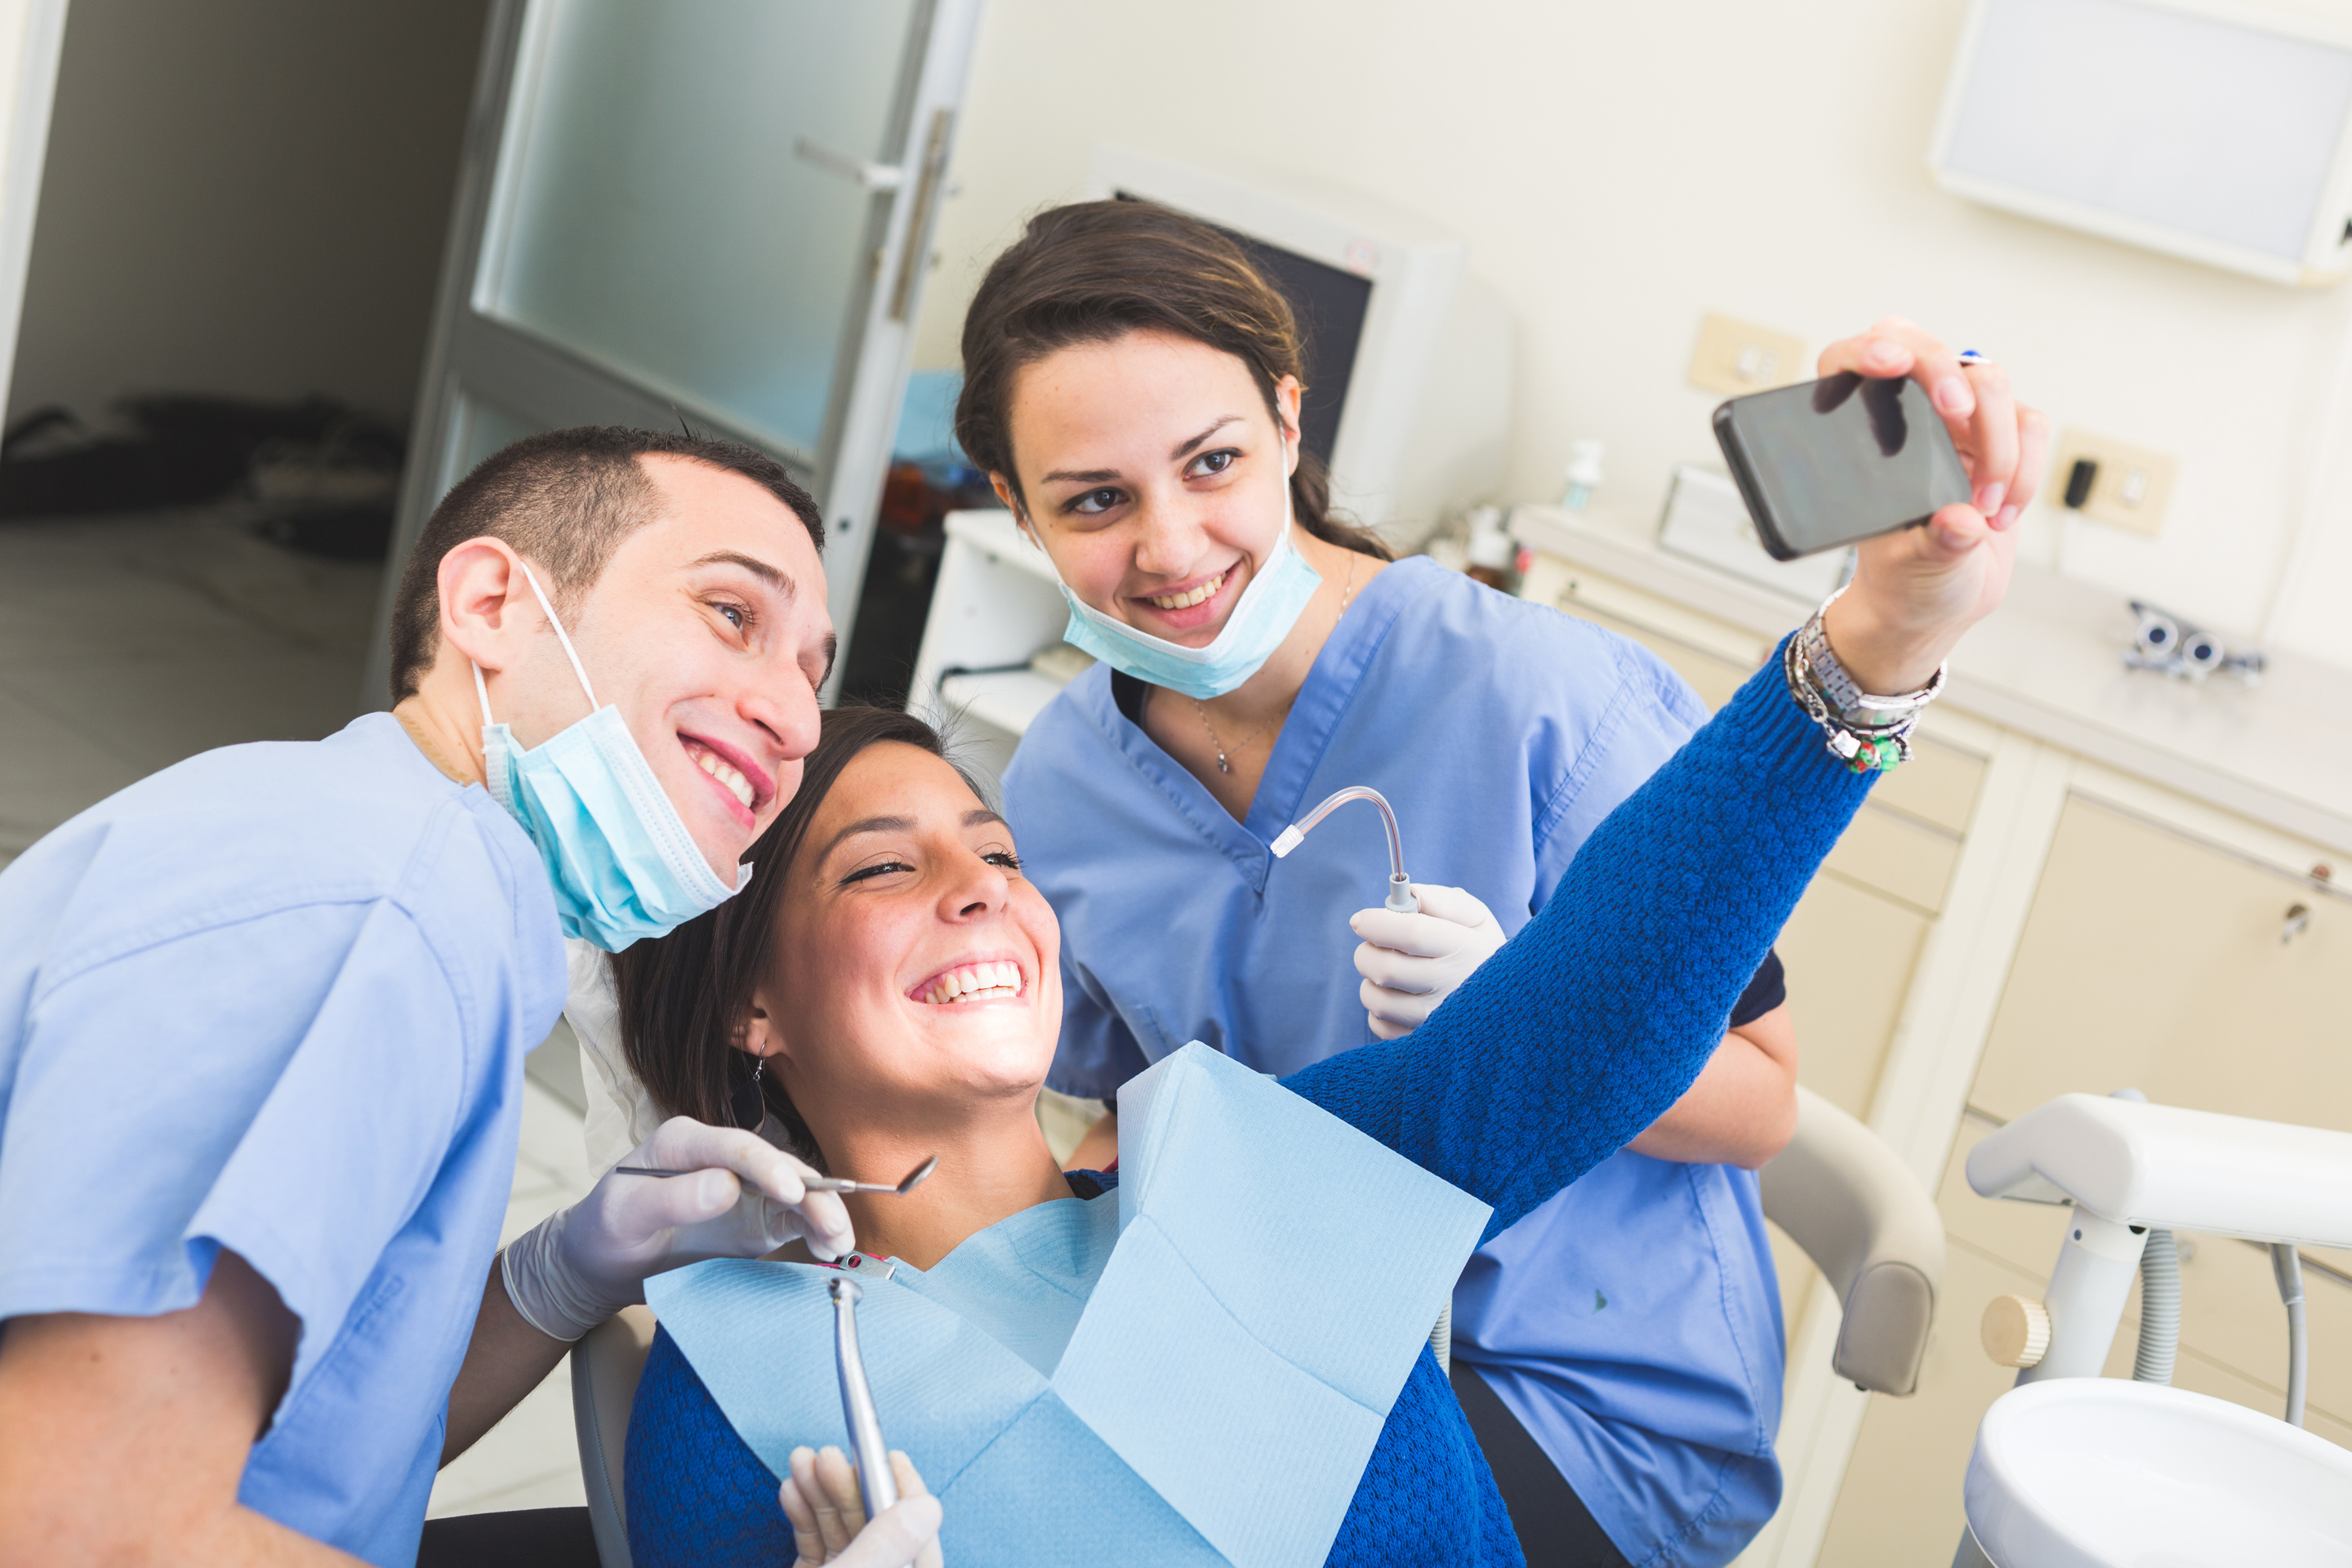 Where can I find a dentist in Noblesville?